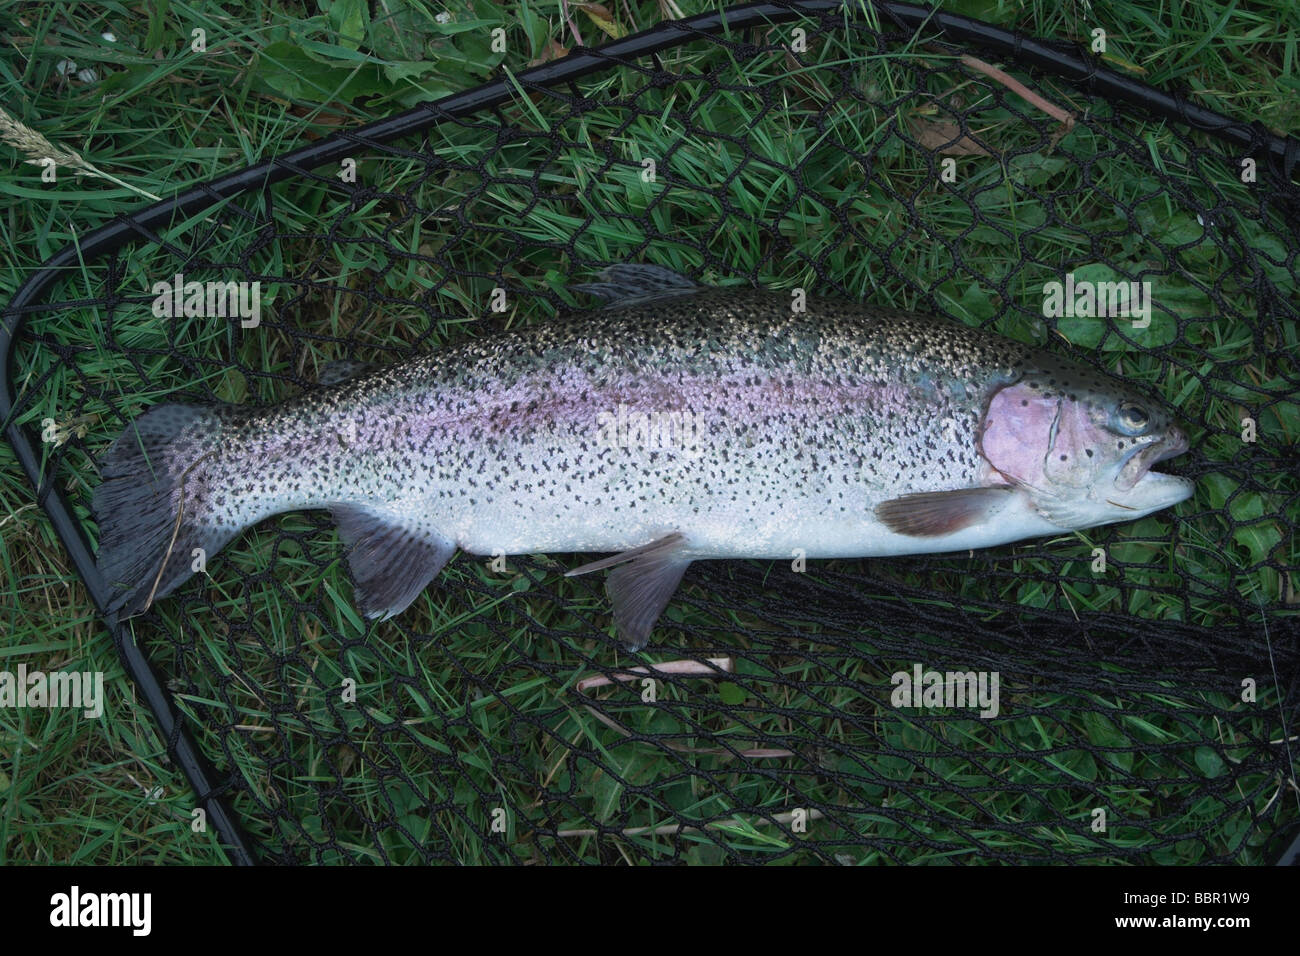 Rainbow Trout Farm Stock Photos & Rainbow Trout Farm Stock Images ...